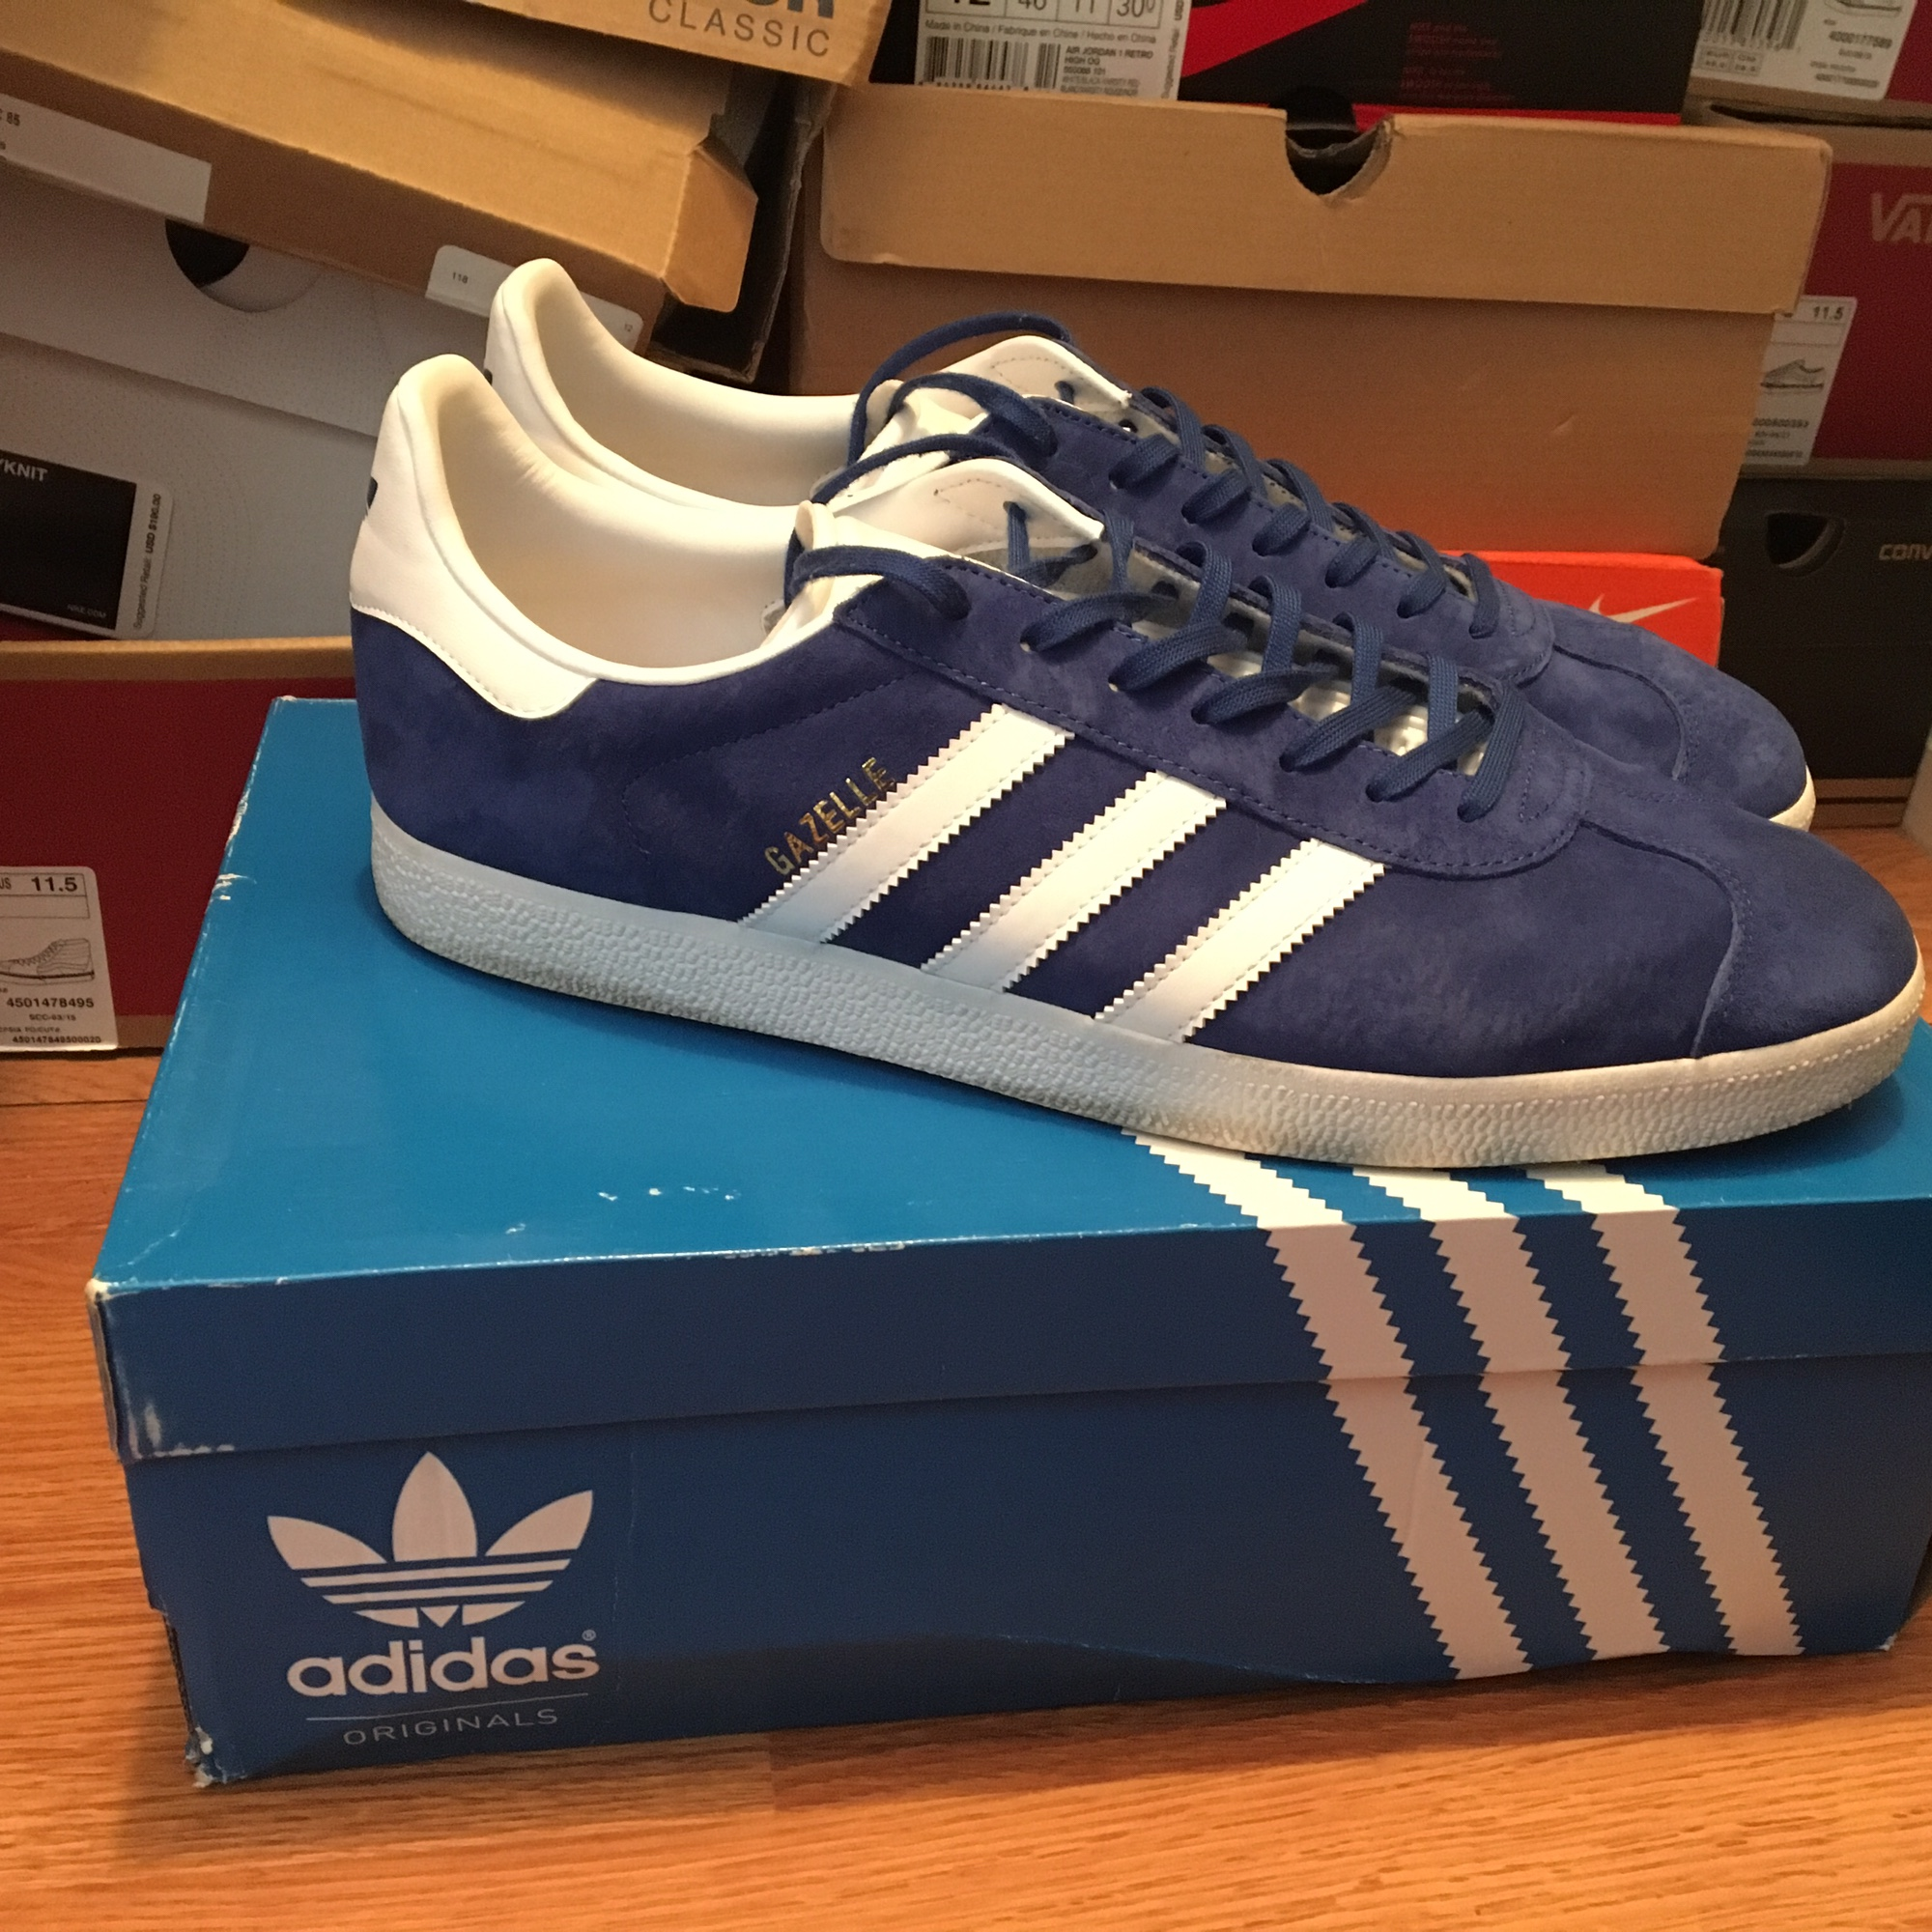 Adidas Gazelles size 12 in this really